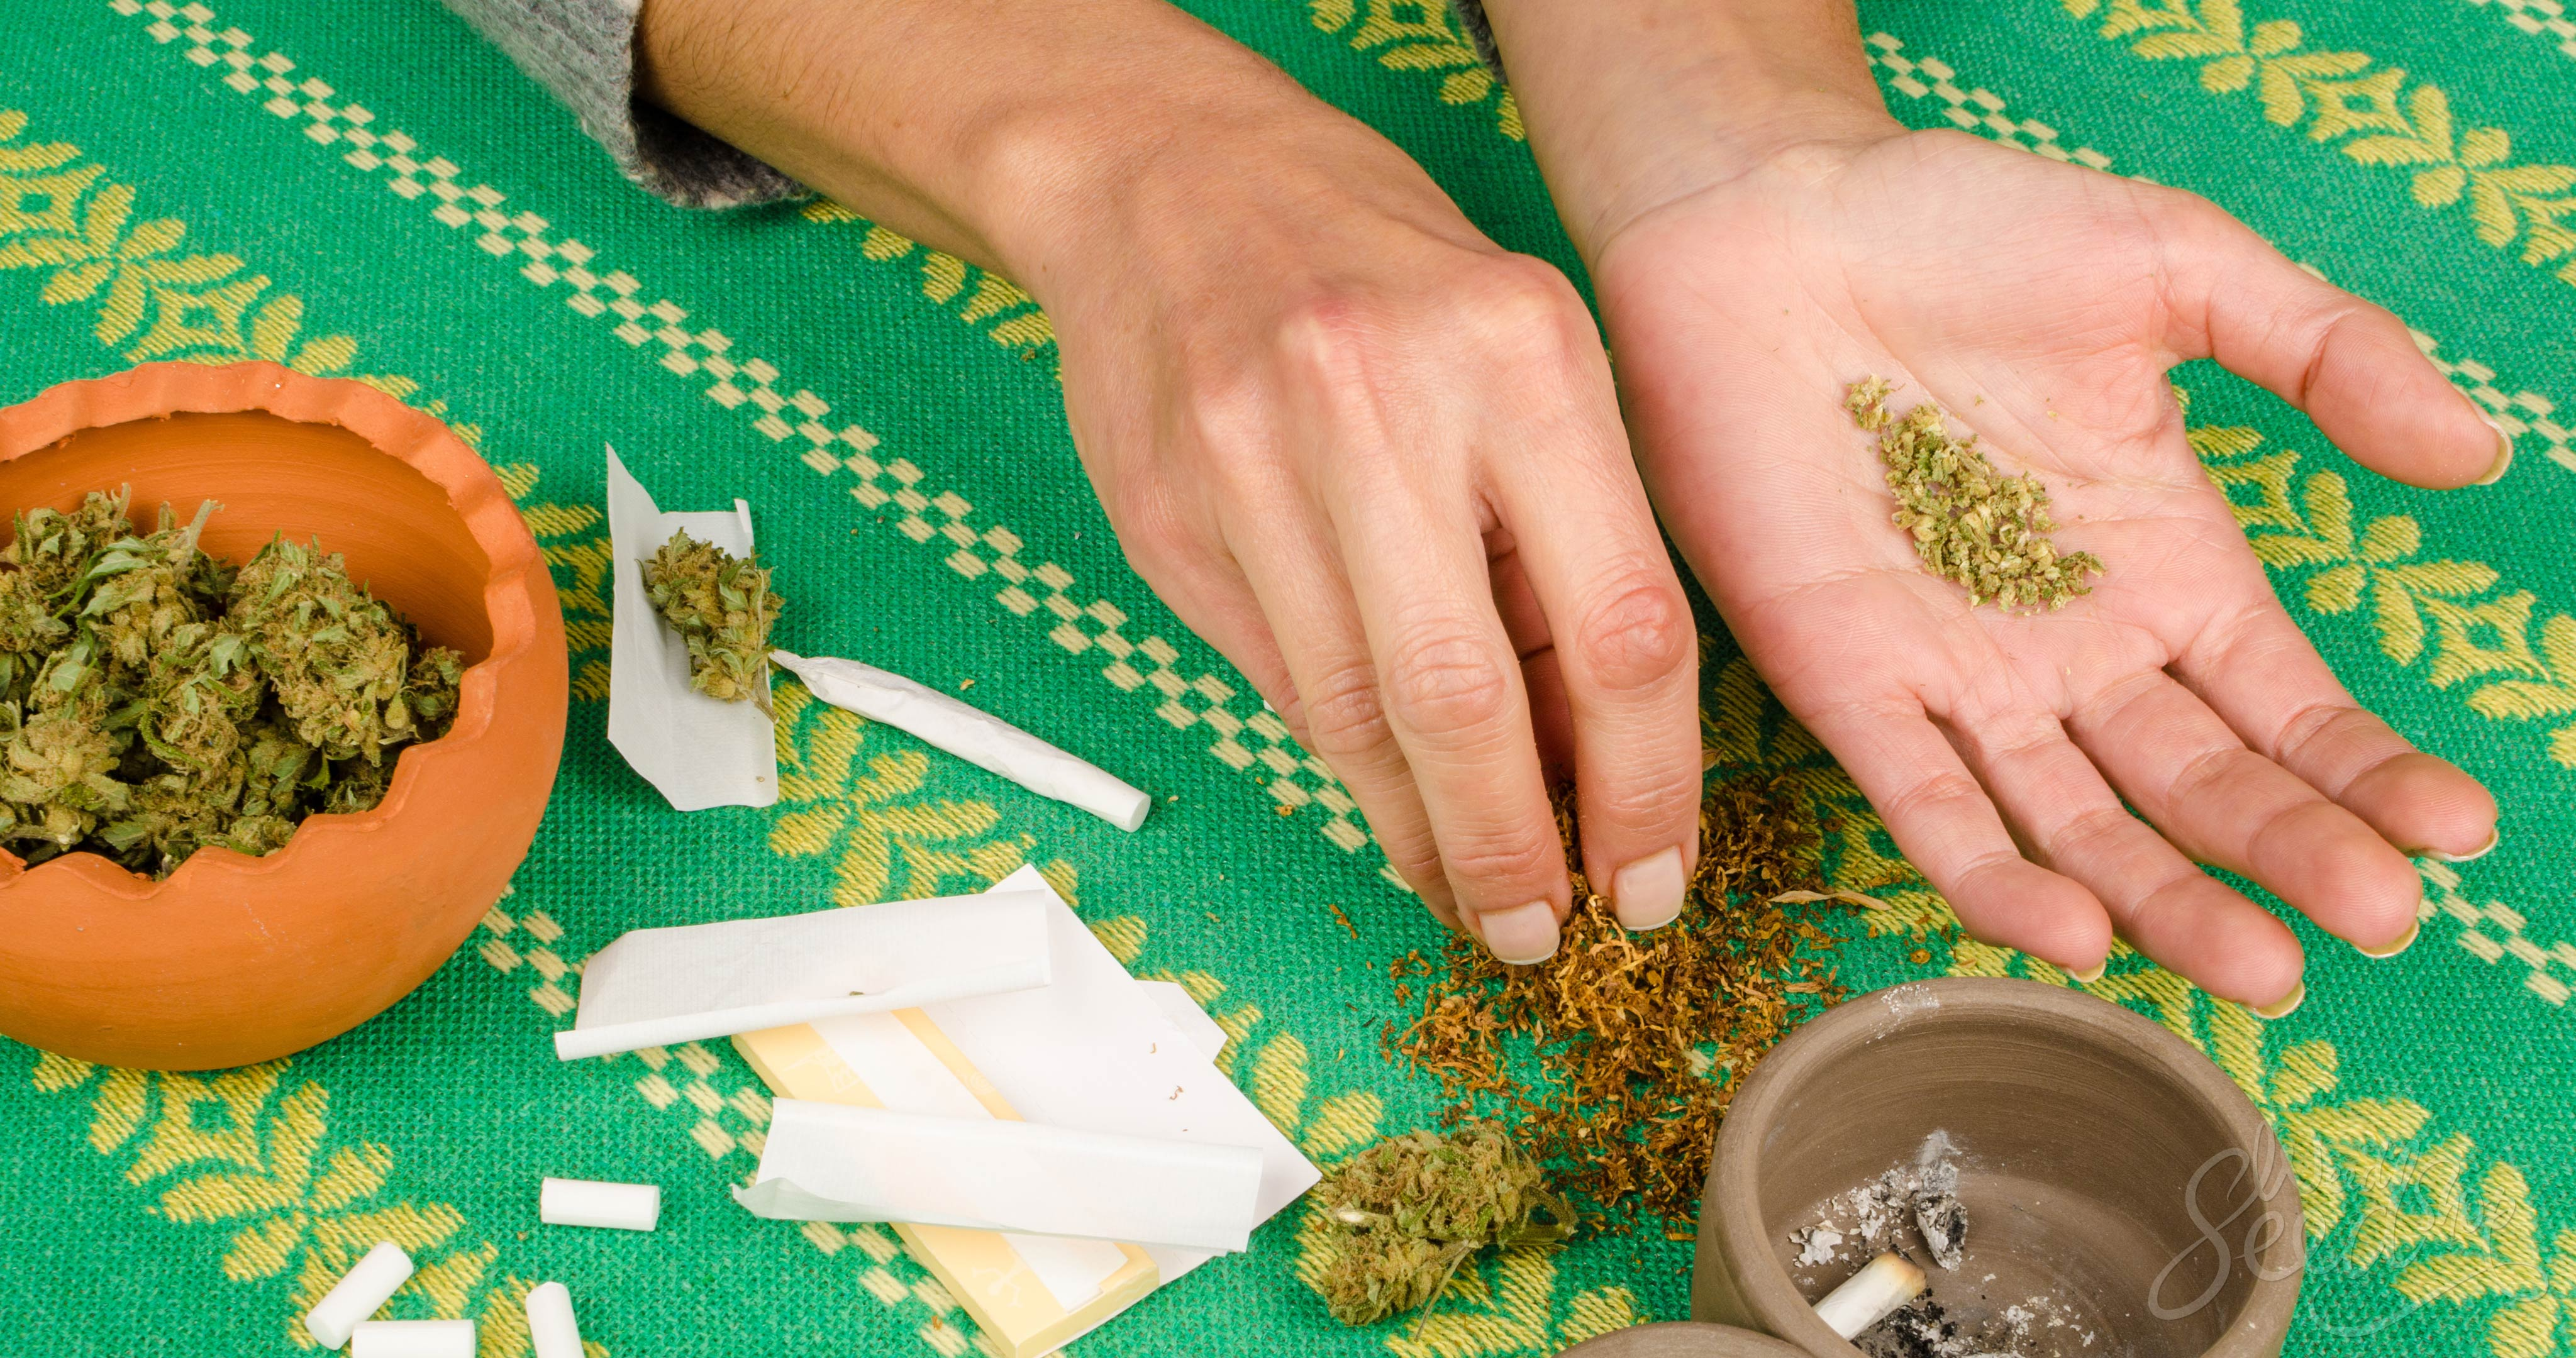 How Stoners Around the World Roll Joints - Weed Seed Shop Blog